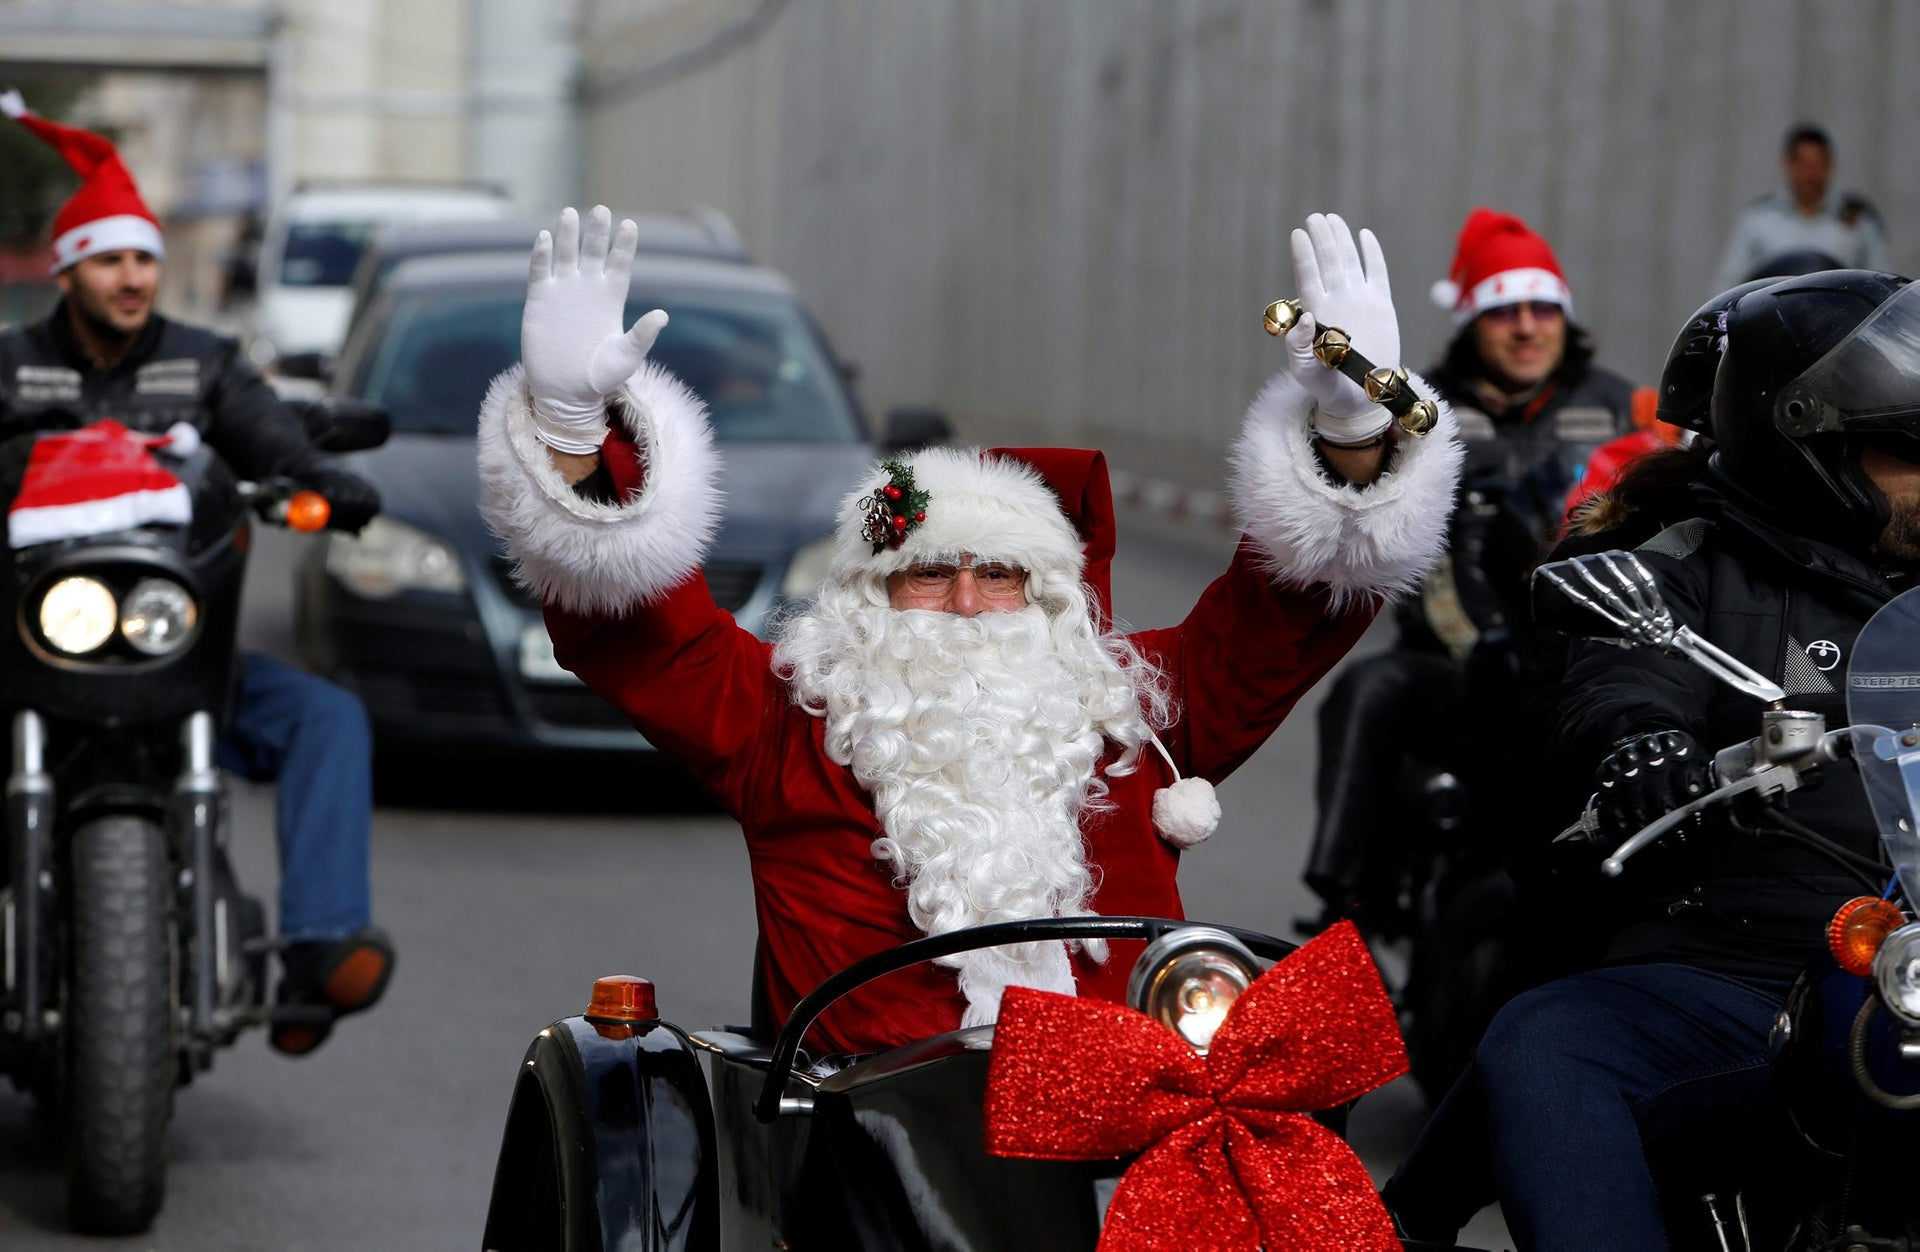 A man dressed as Santa Claus gesturing as the convoy of the Latin Patriarch of Jerusalem arrives through an Israeli checkpoint to attend Christmas celebrations in the West Bank city of Bethlehem, December 24, 2017.